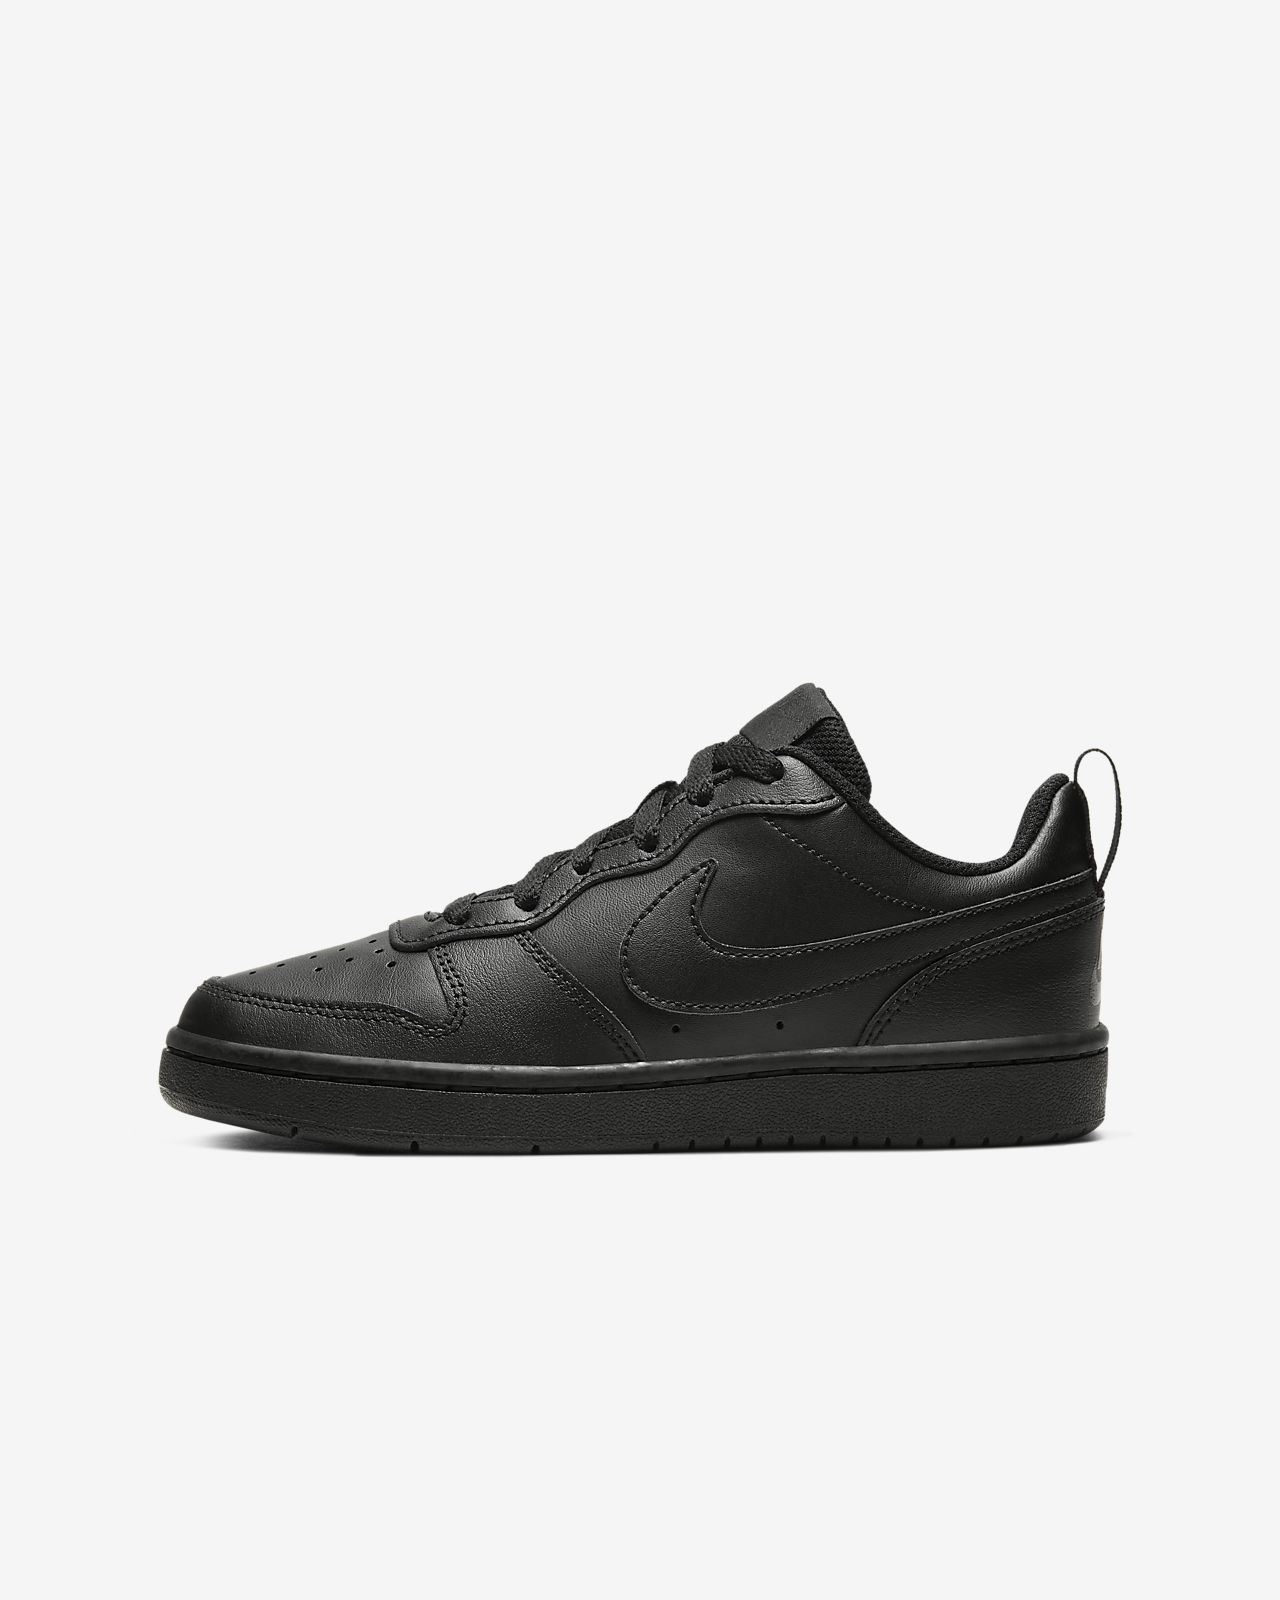 Nike Kids' Court Borough Low Grey Leather Shoes